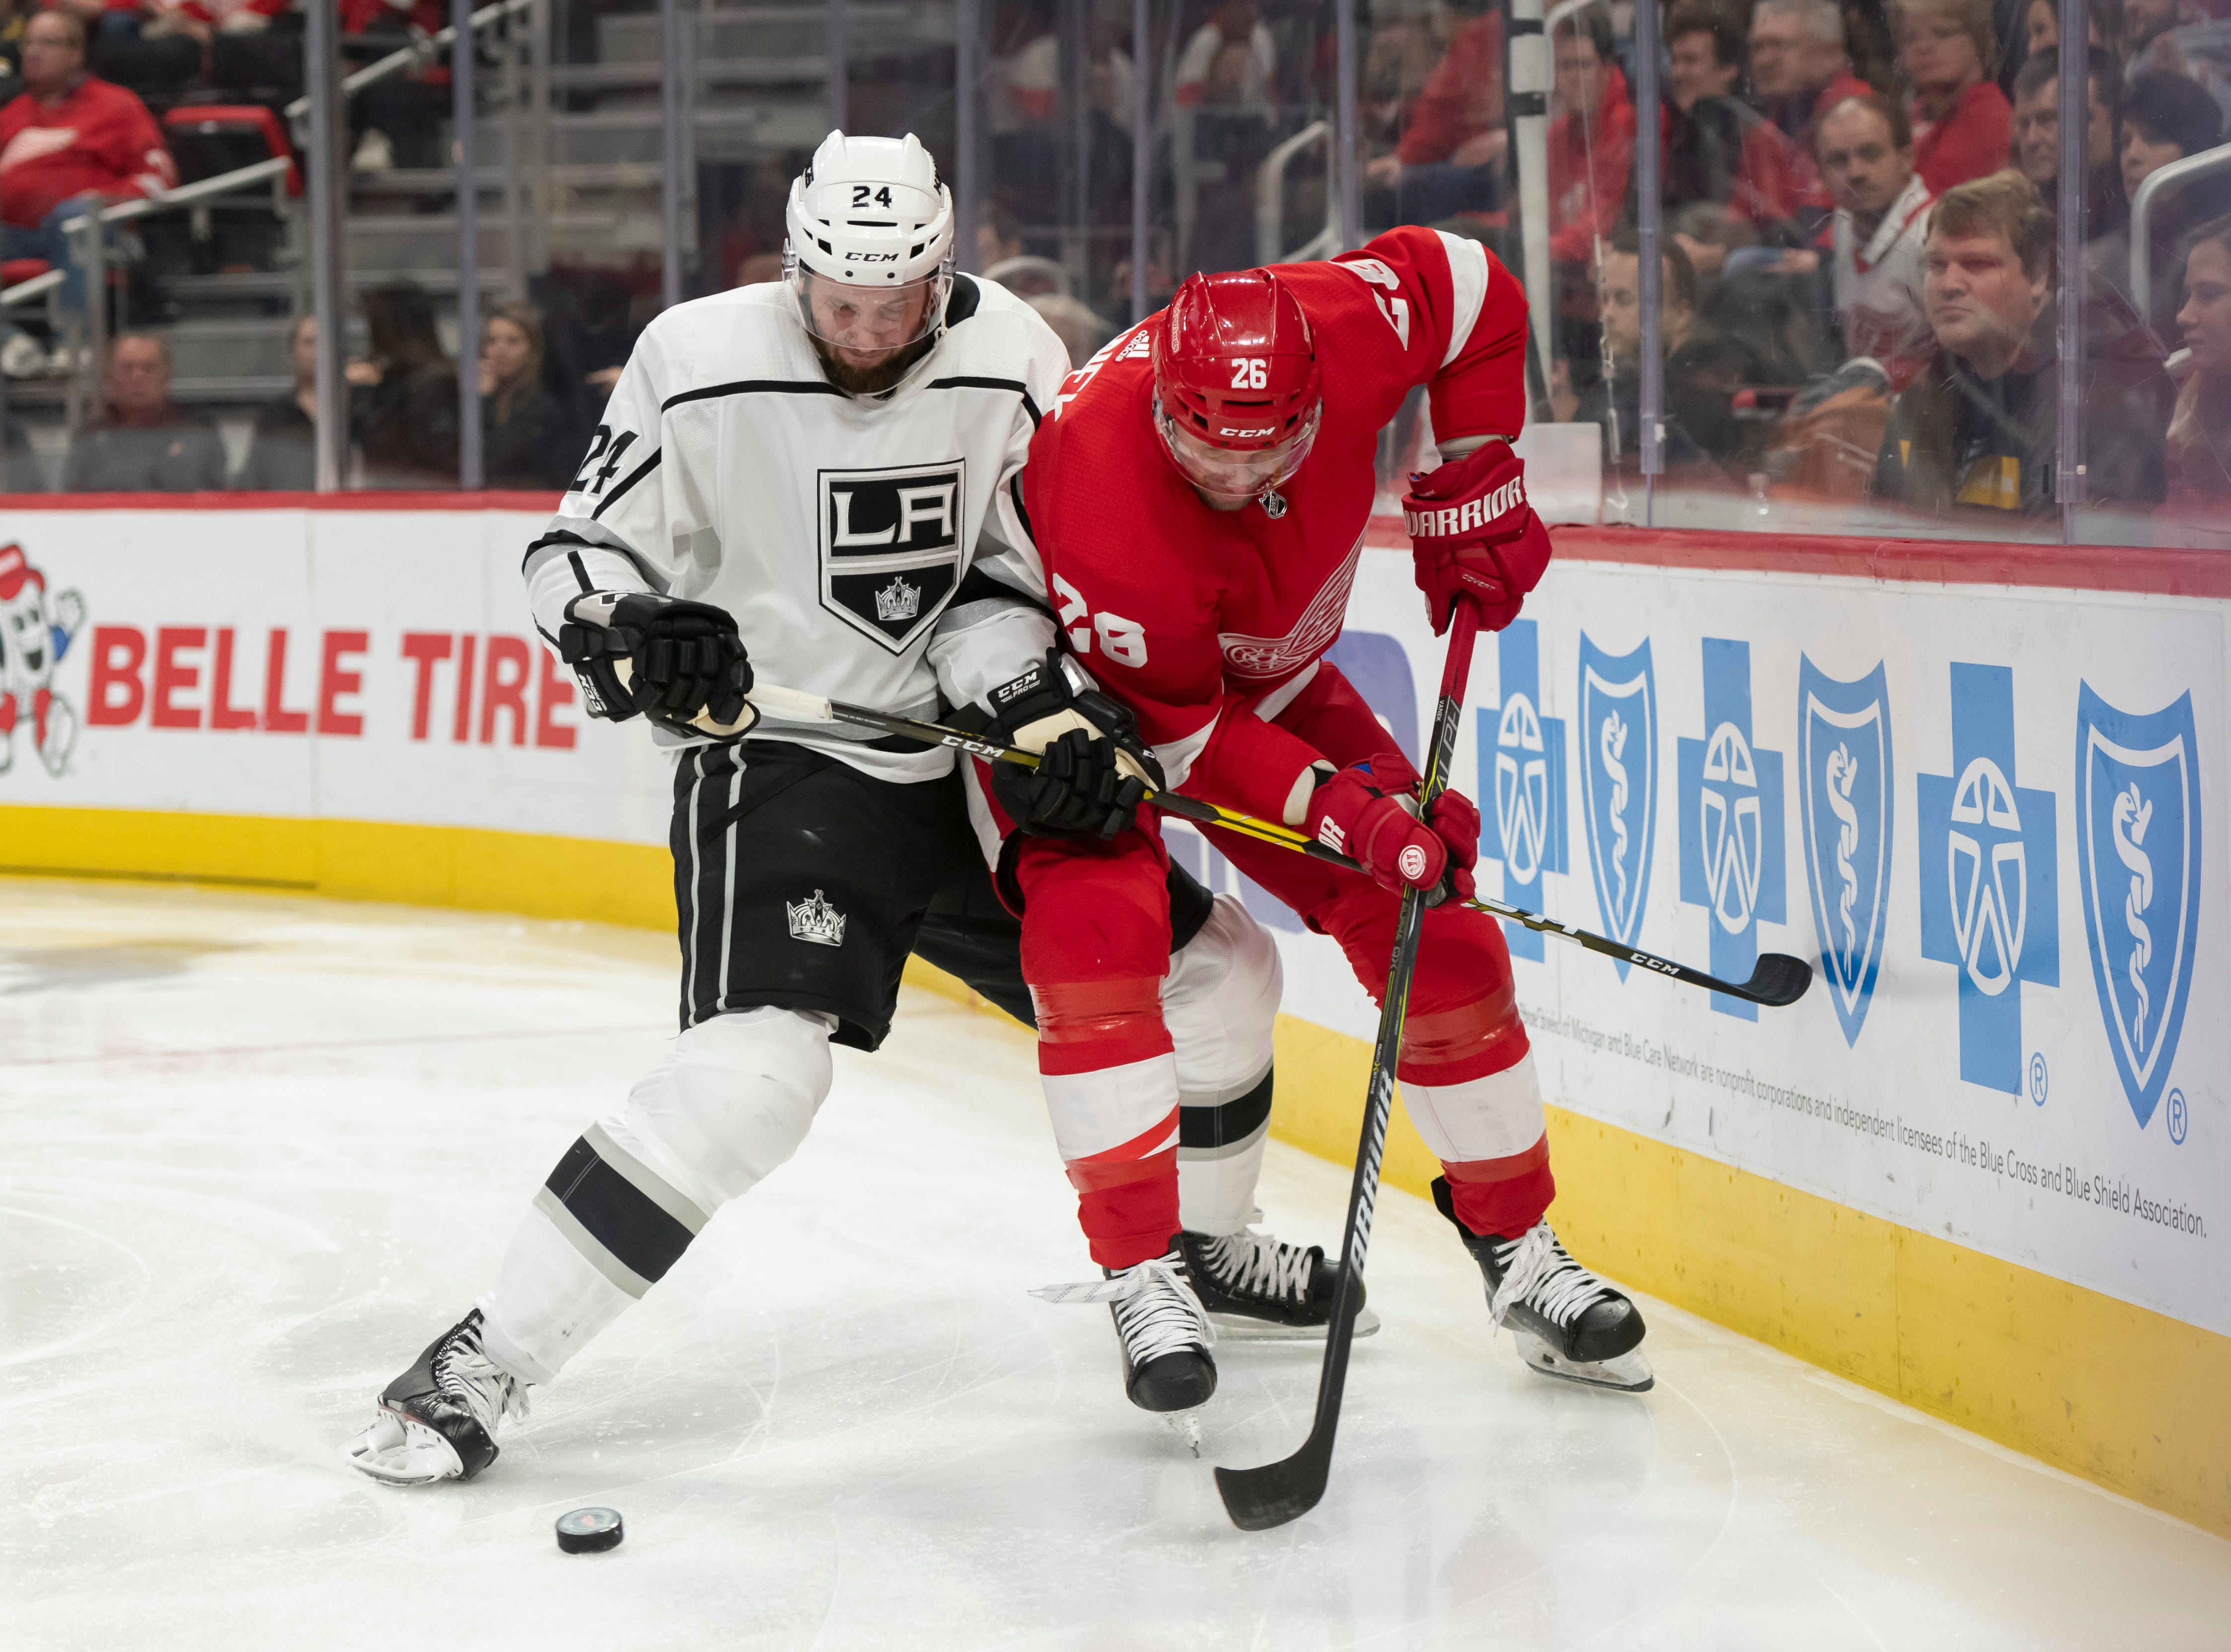 Detroit left wing Thomas Vanek and Los Angeles defenseman Derek Forbort battle for the puck in the third period.